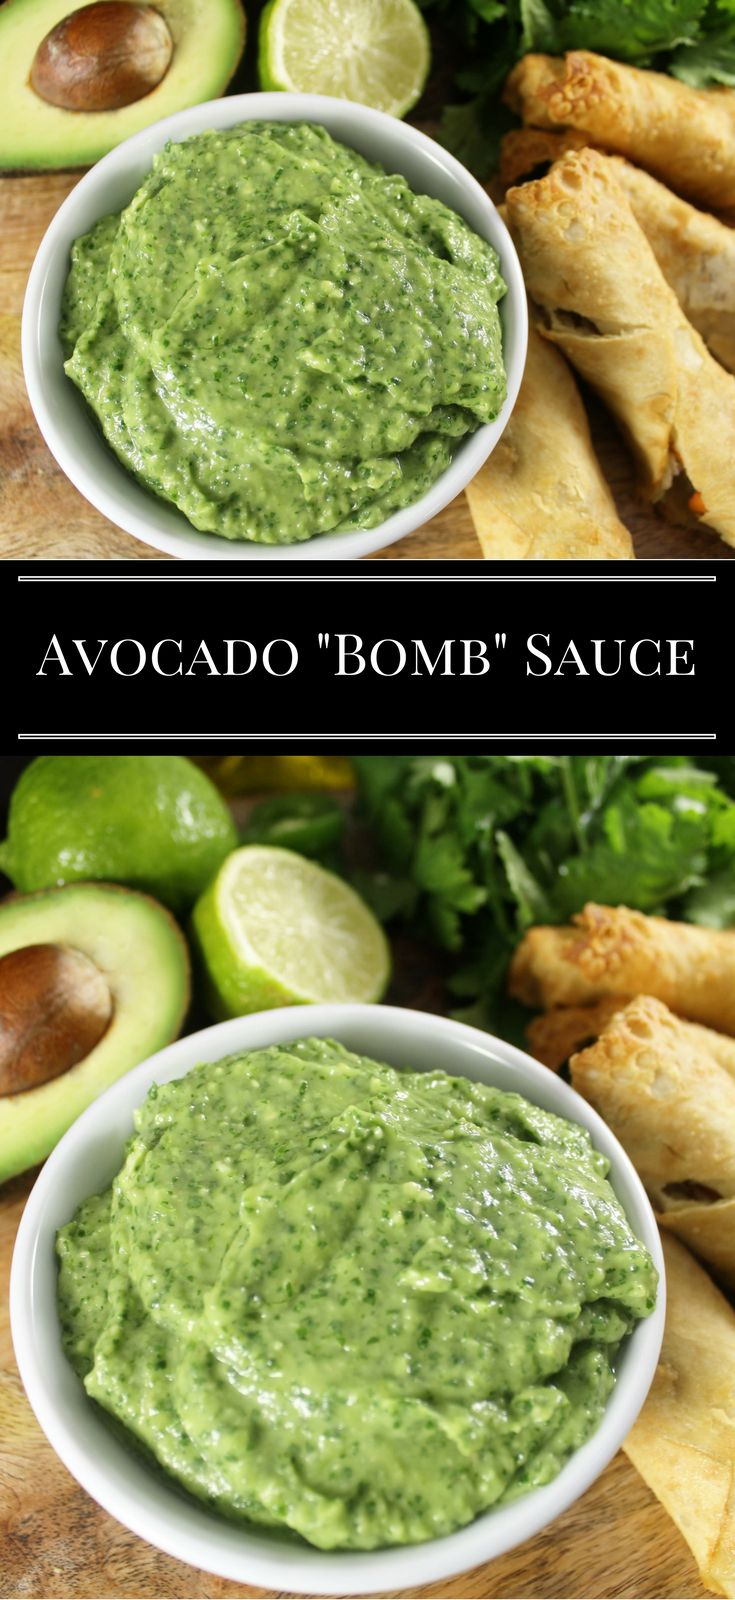 Avocado Bomb Sauce | Dip | Spicy Sauce | Healthy Food #avocadosauce